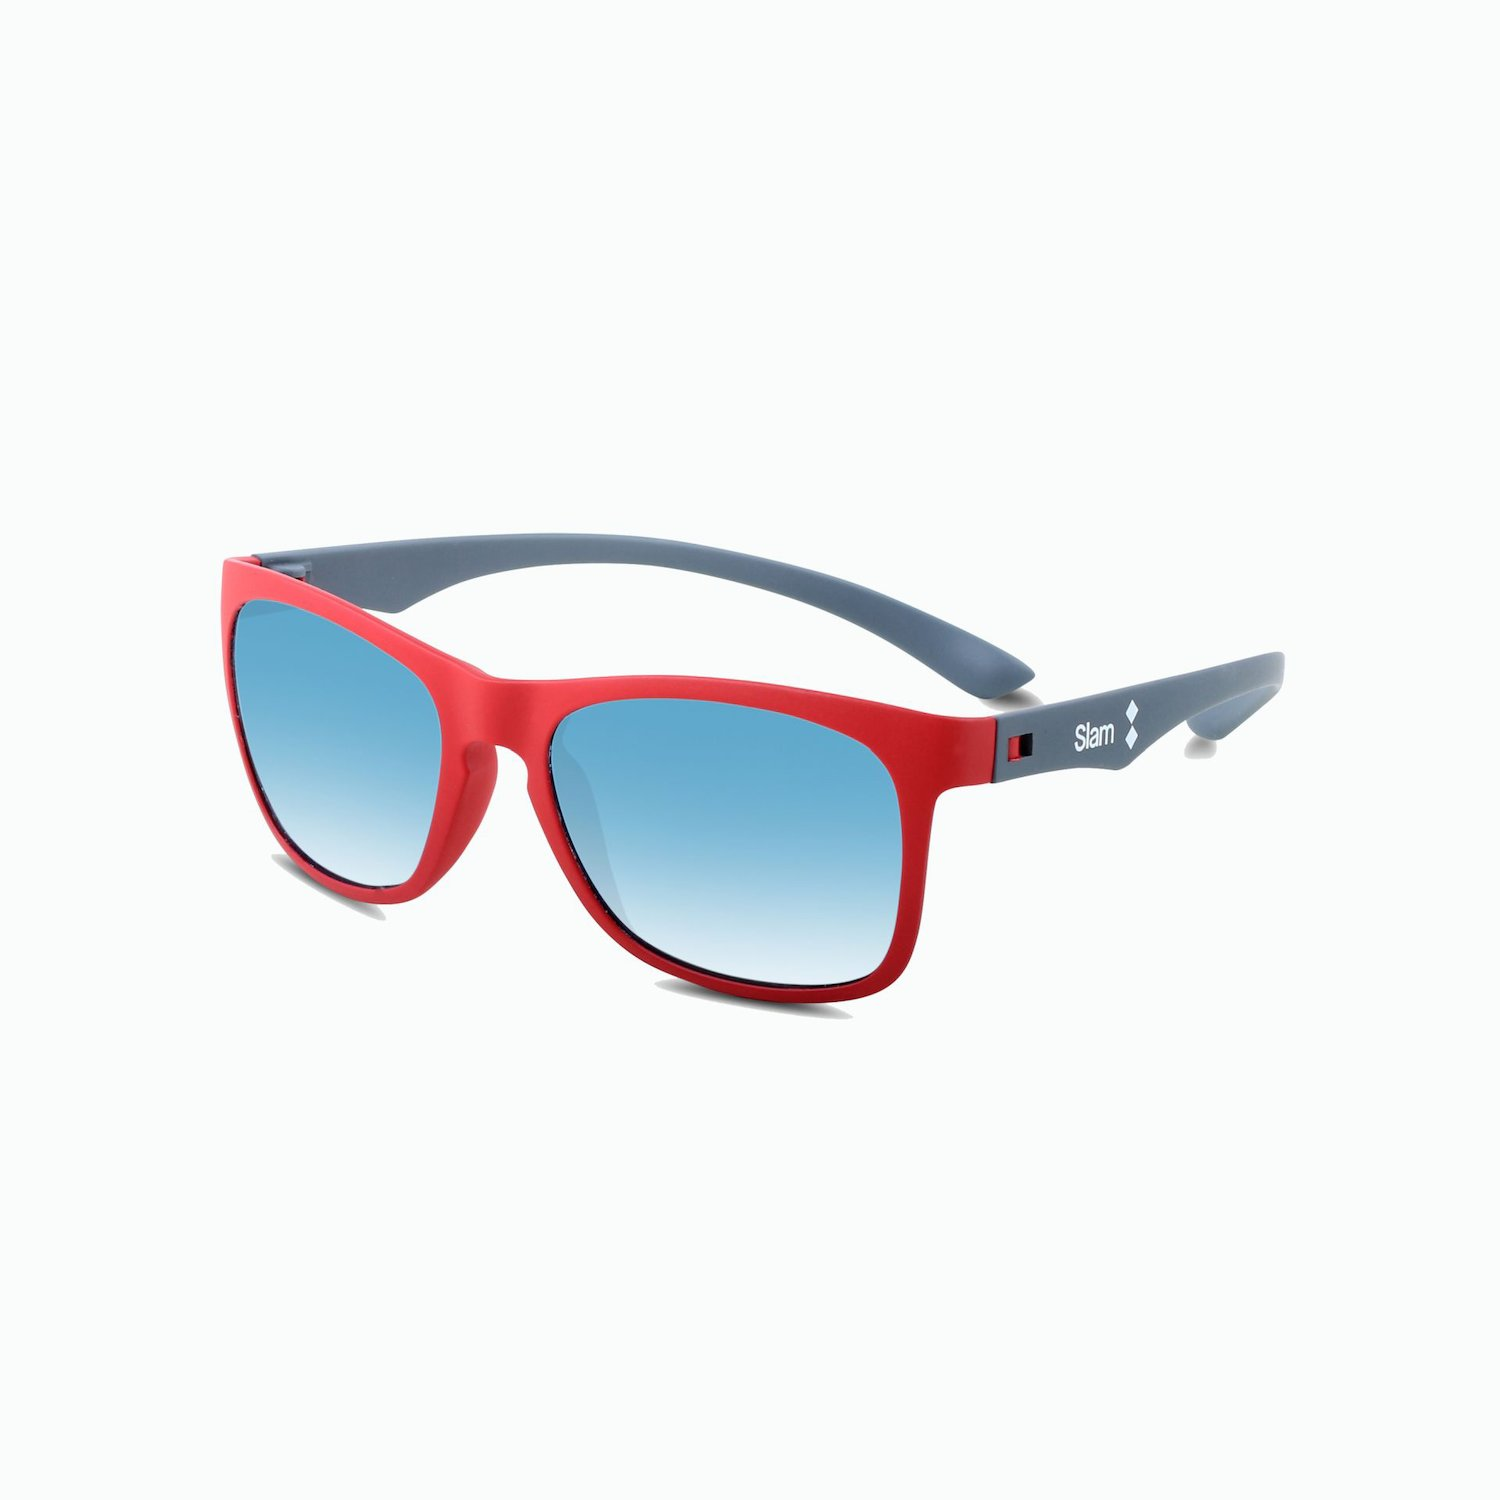 Sunglasses Red 40 KNT - Navy